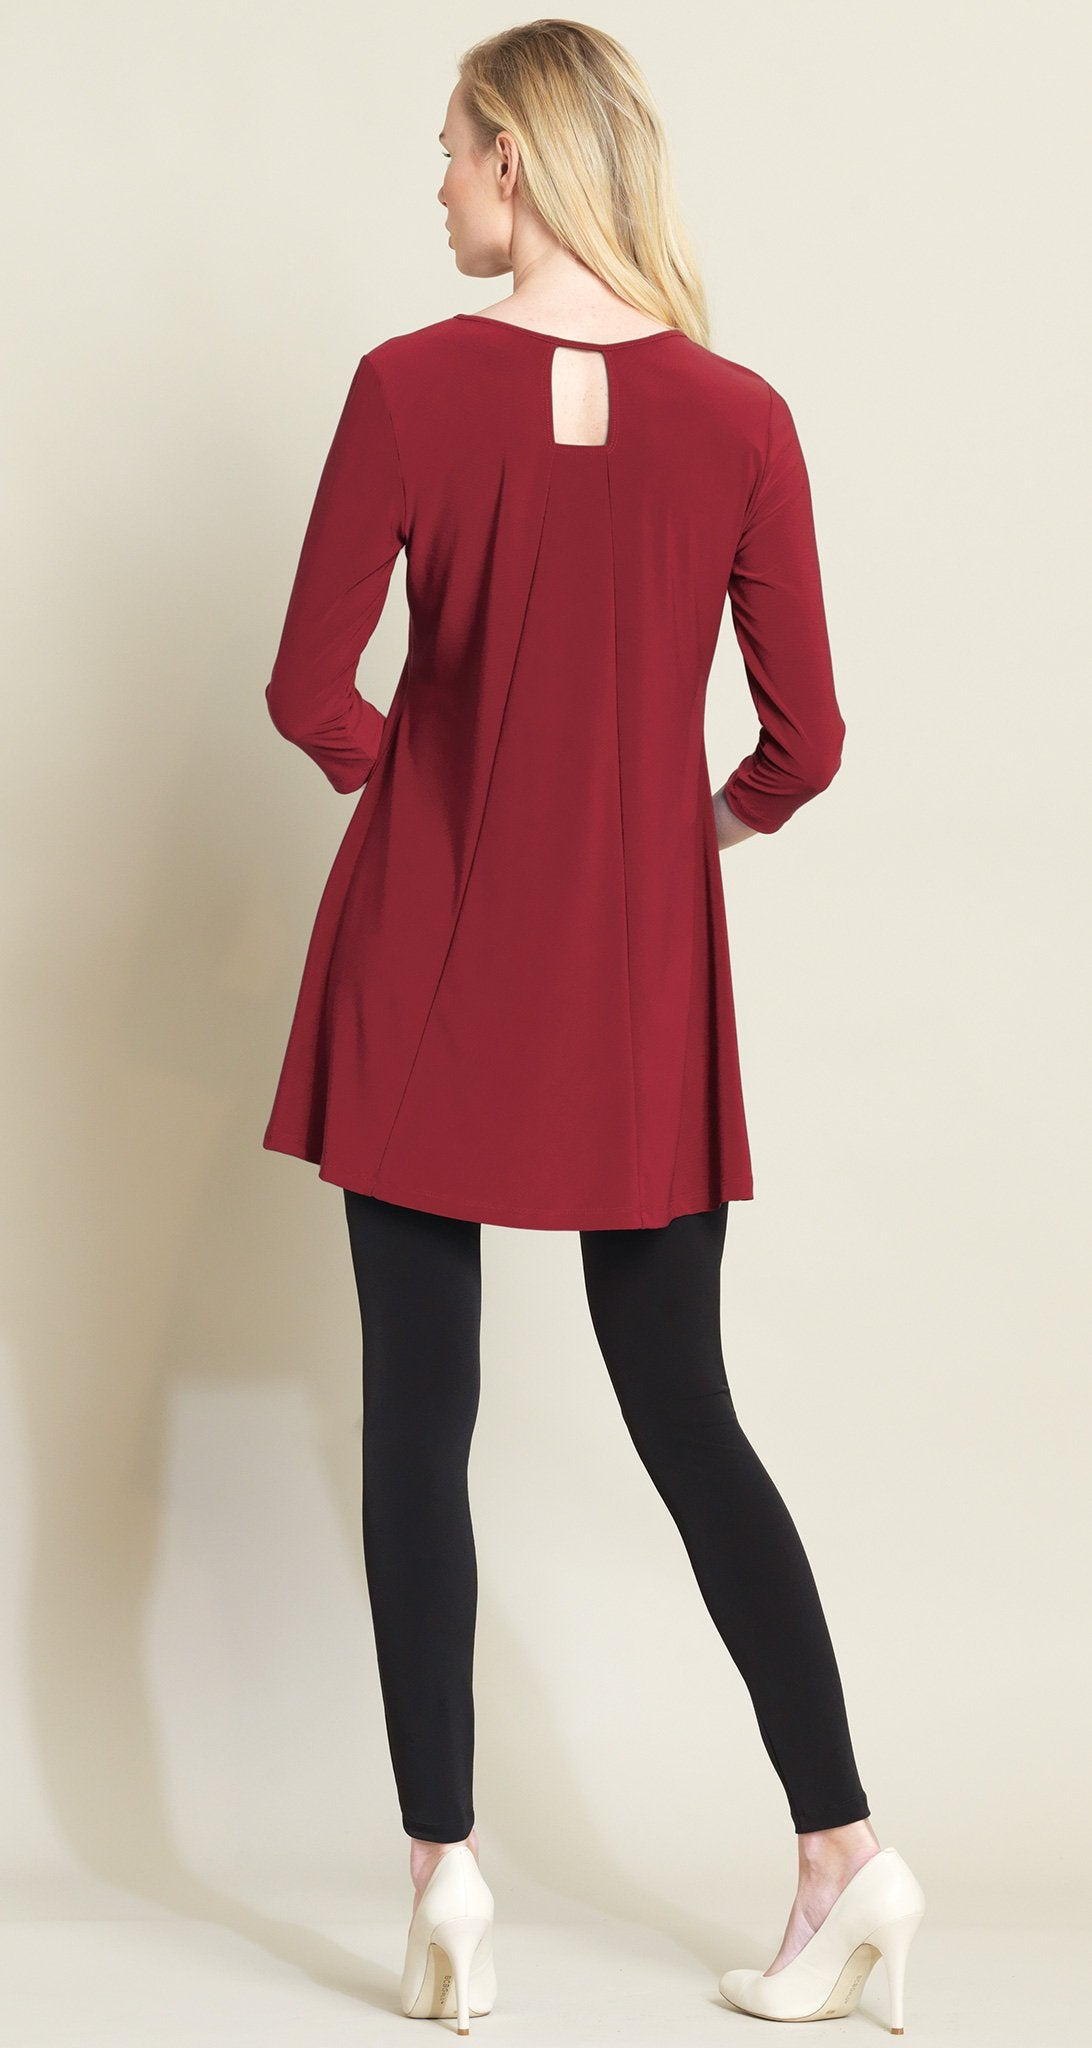 Square Cut Out Solid Tunic - Merlot - Final Sale